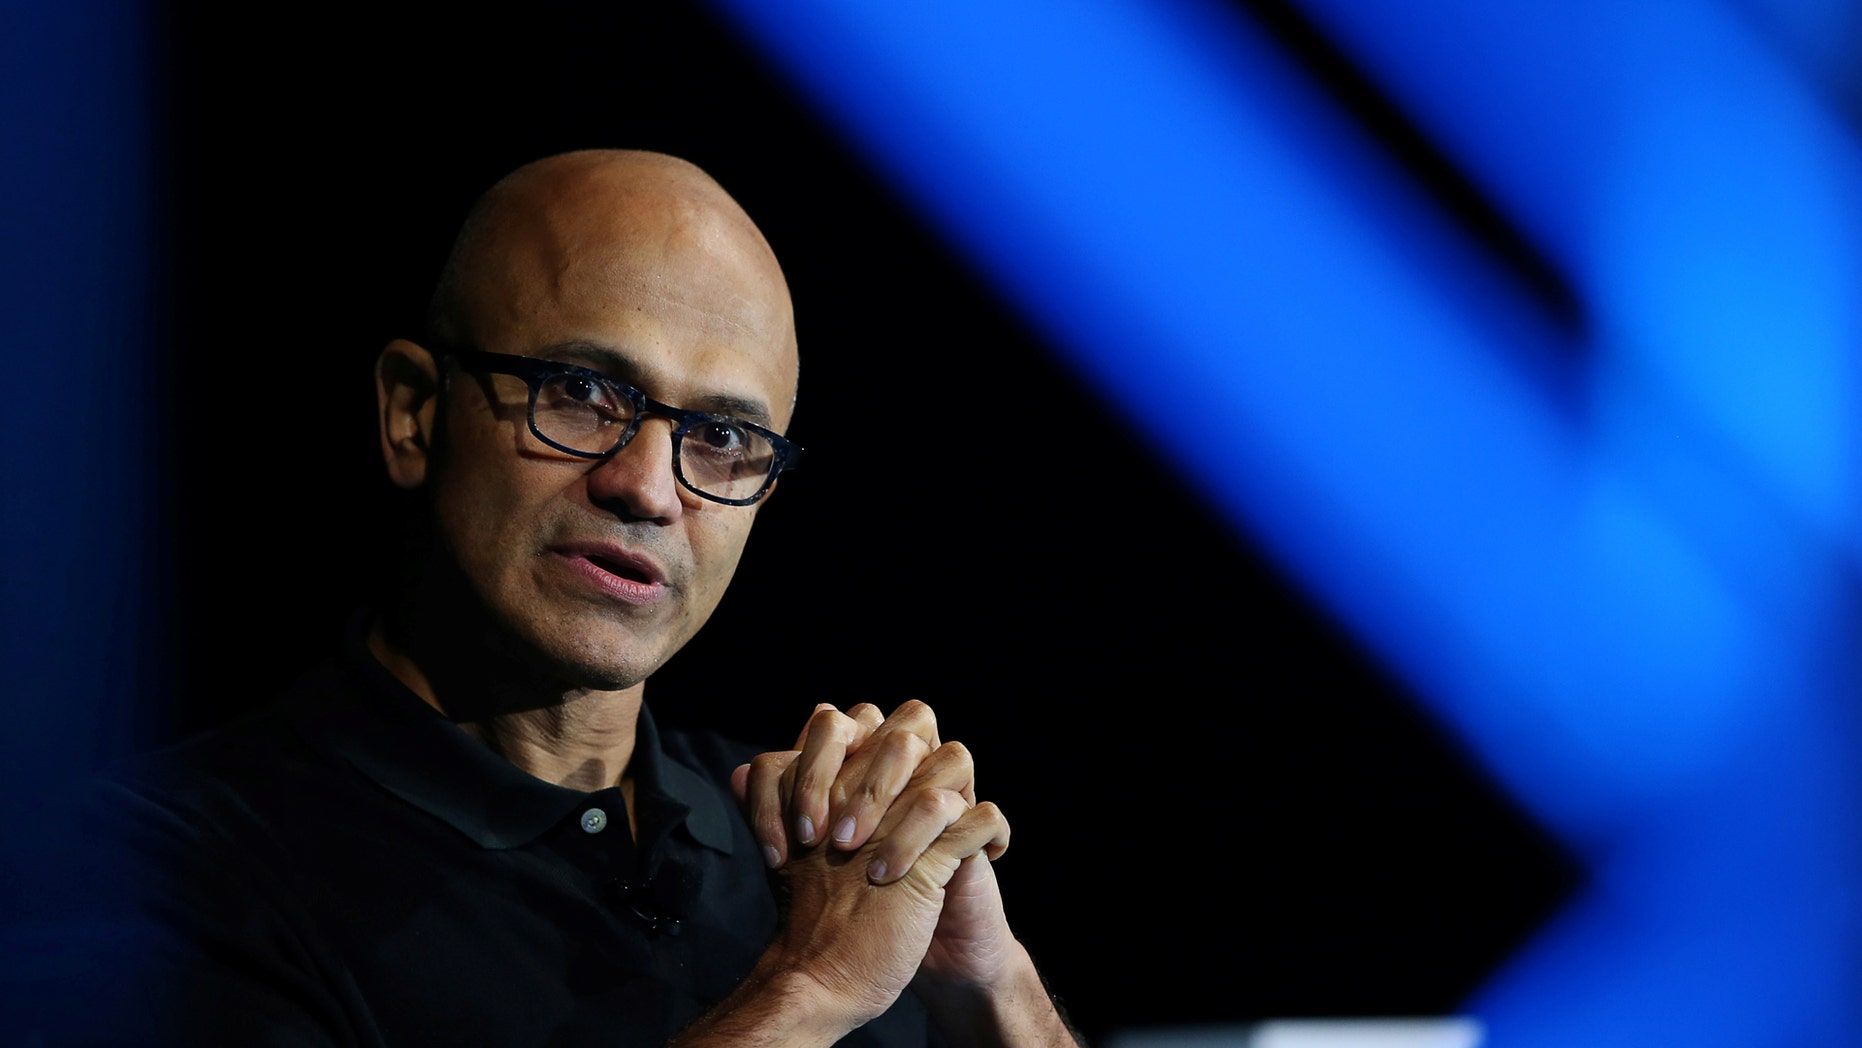 File photo - Satya Nadella, CEO of Microsoft, speaks during the opening night of the WSJD Live conference in Laguna Beach, California Oct. 24, 2016. (REUTERS/Mike Blake)